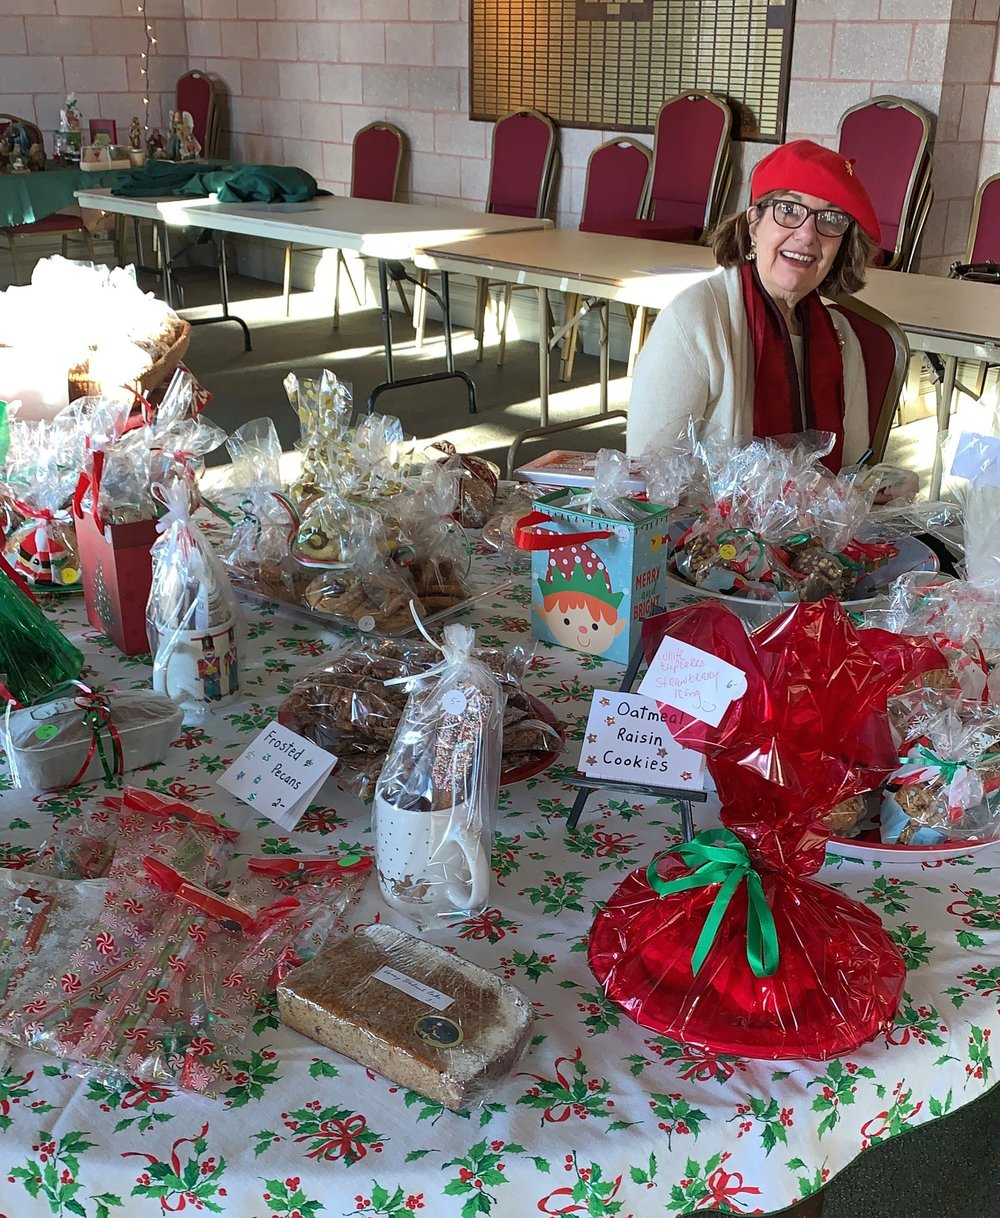 Some of the home-made items contributed by our many volunteer bakers for sale at the event.